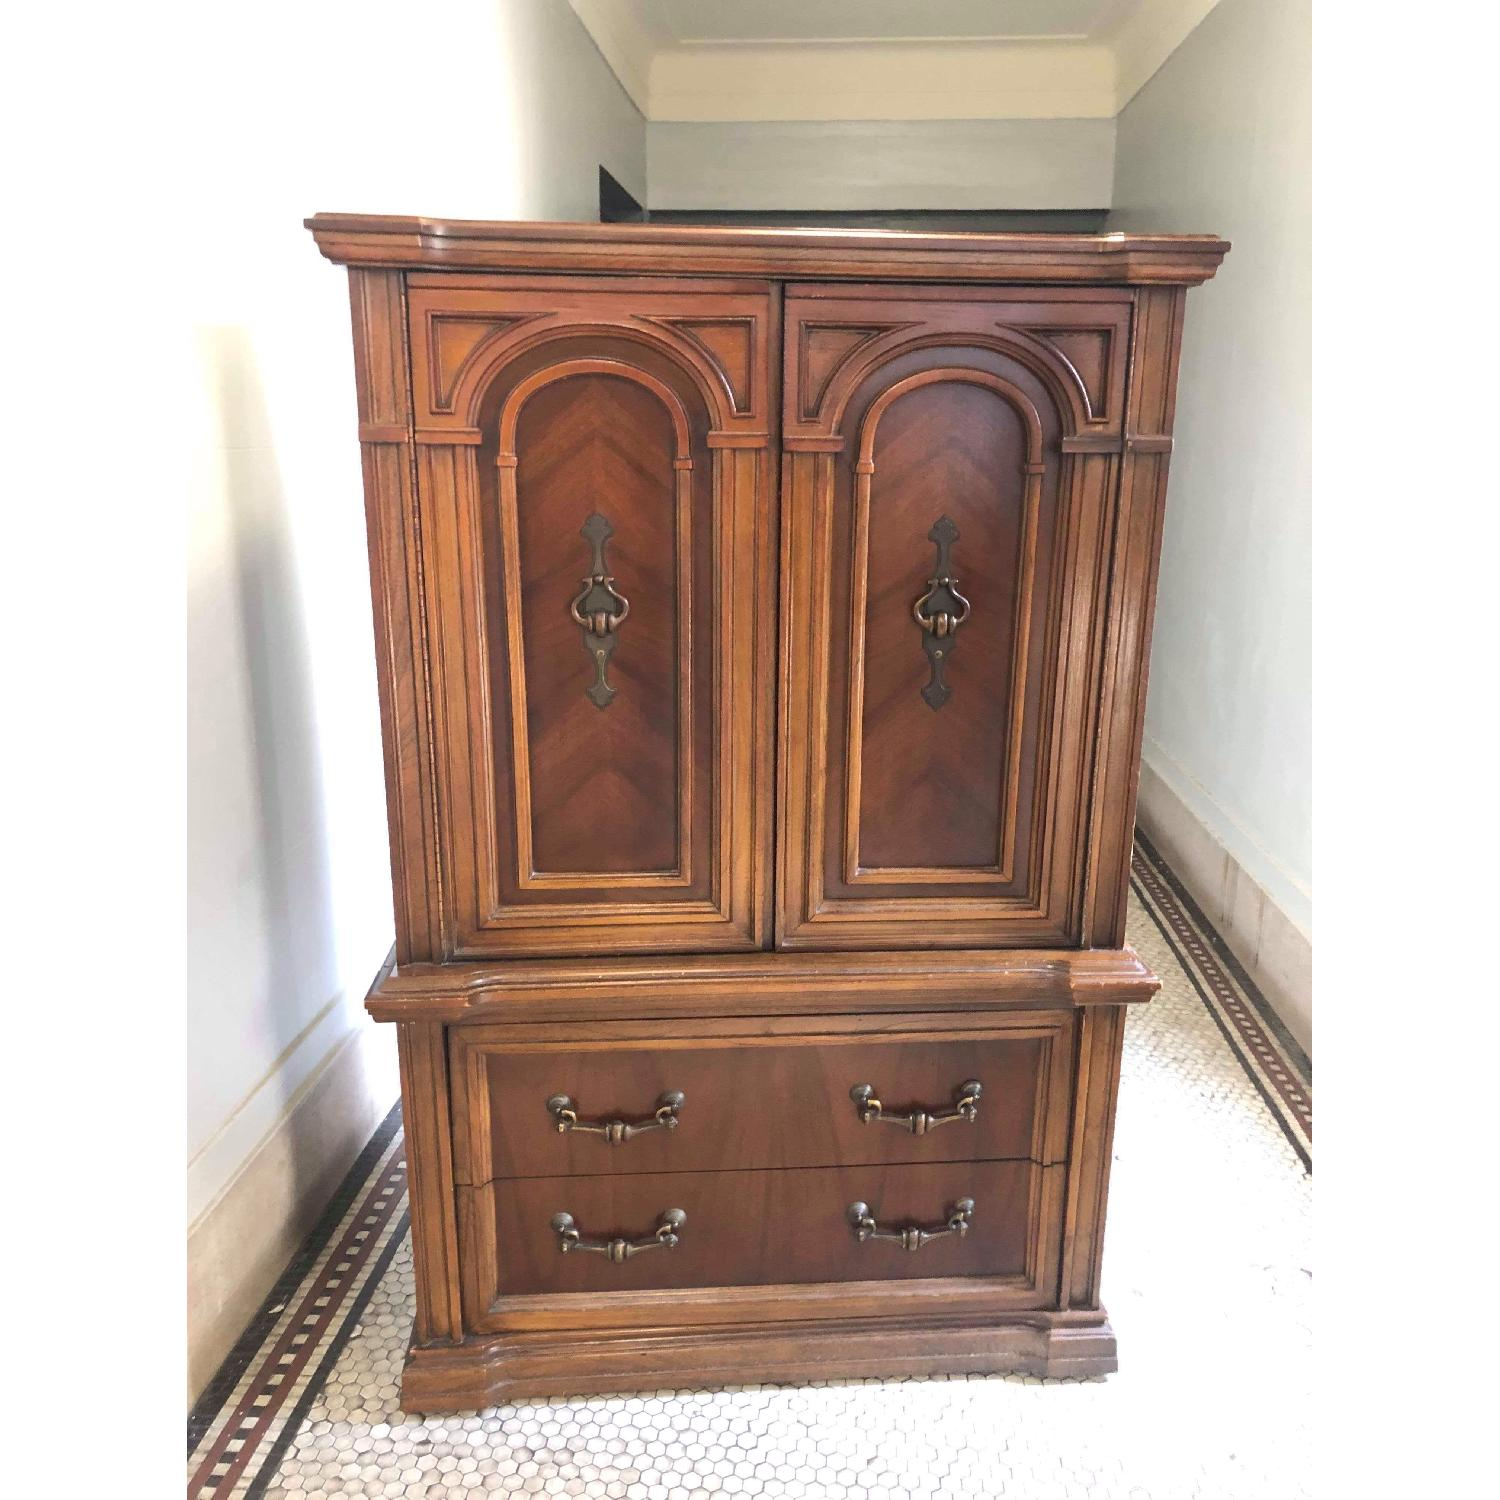 Vintage 1970s Solid Wood Armoire w/ Original Brass Handles-15